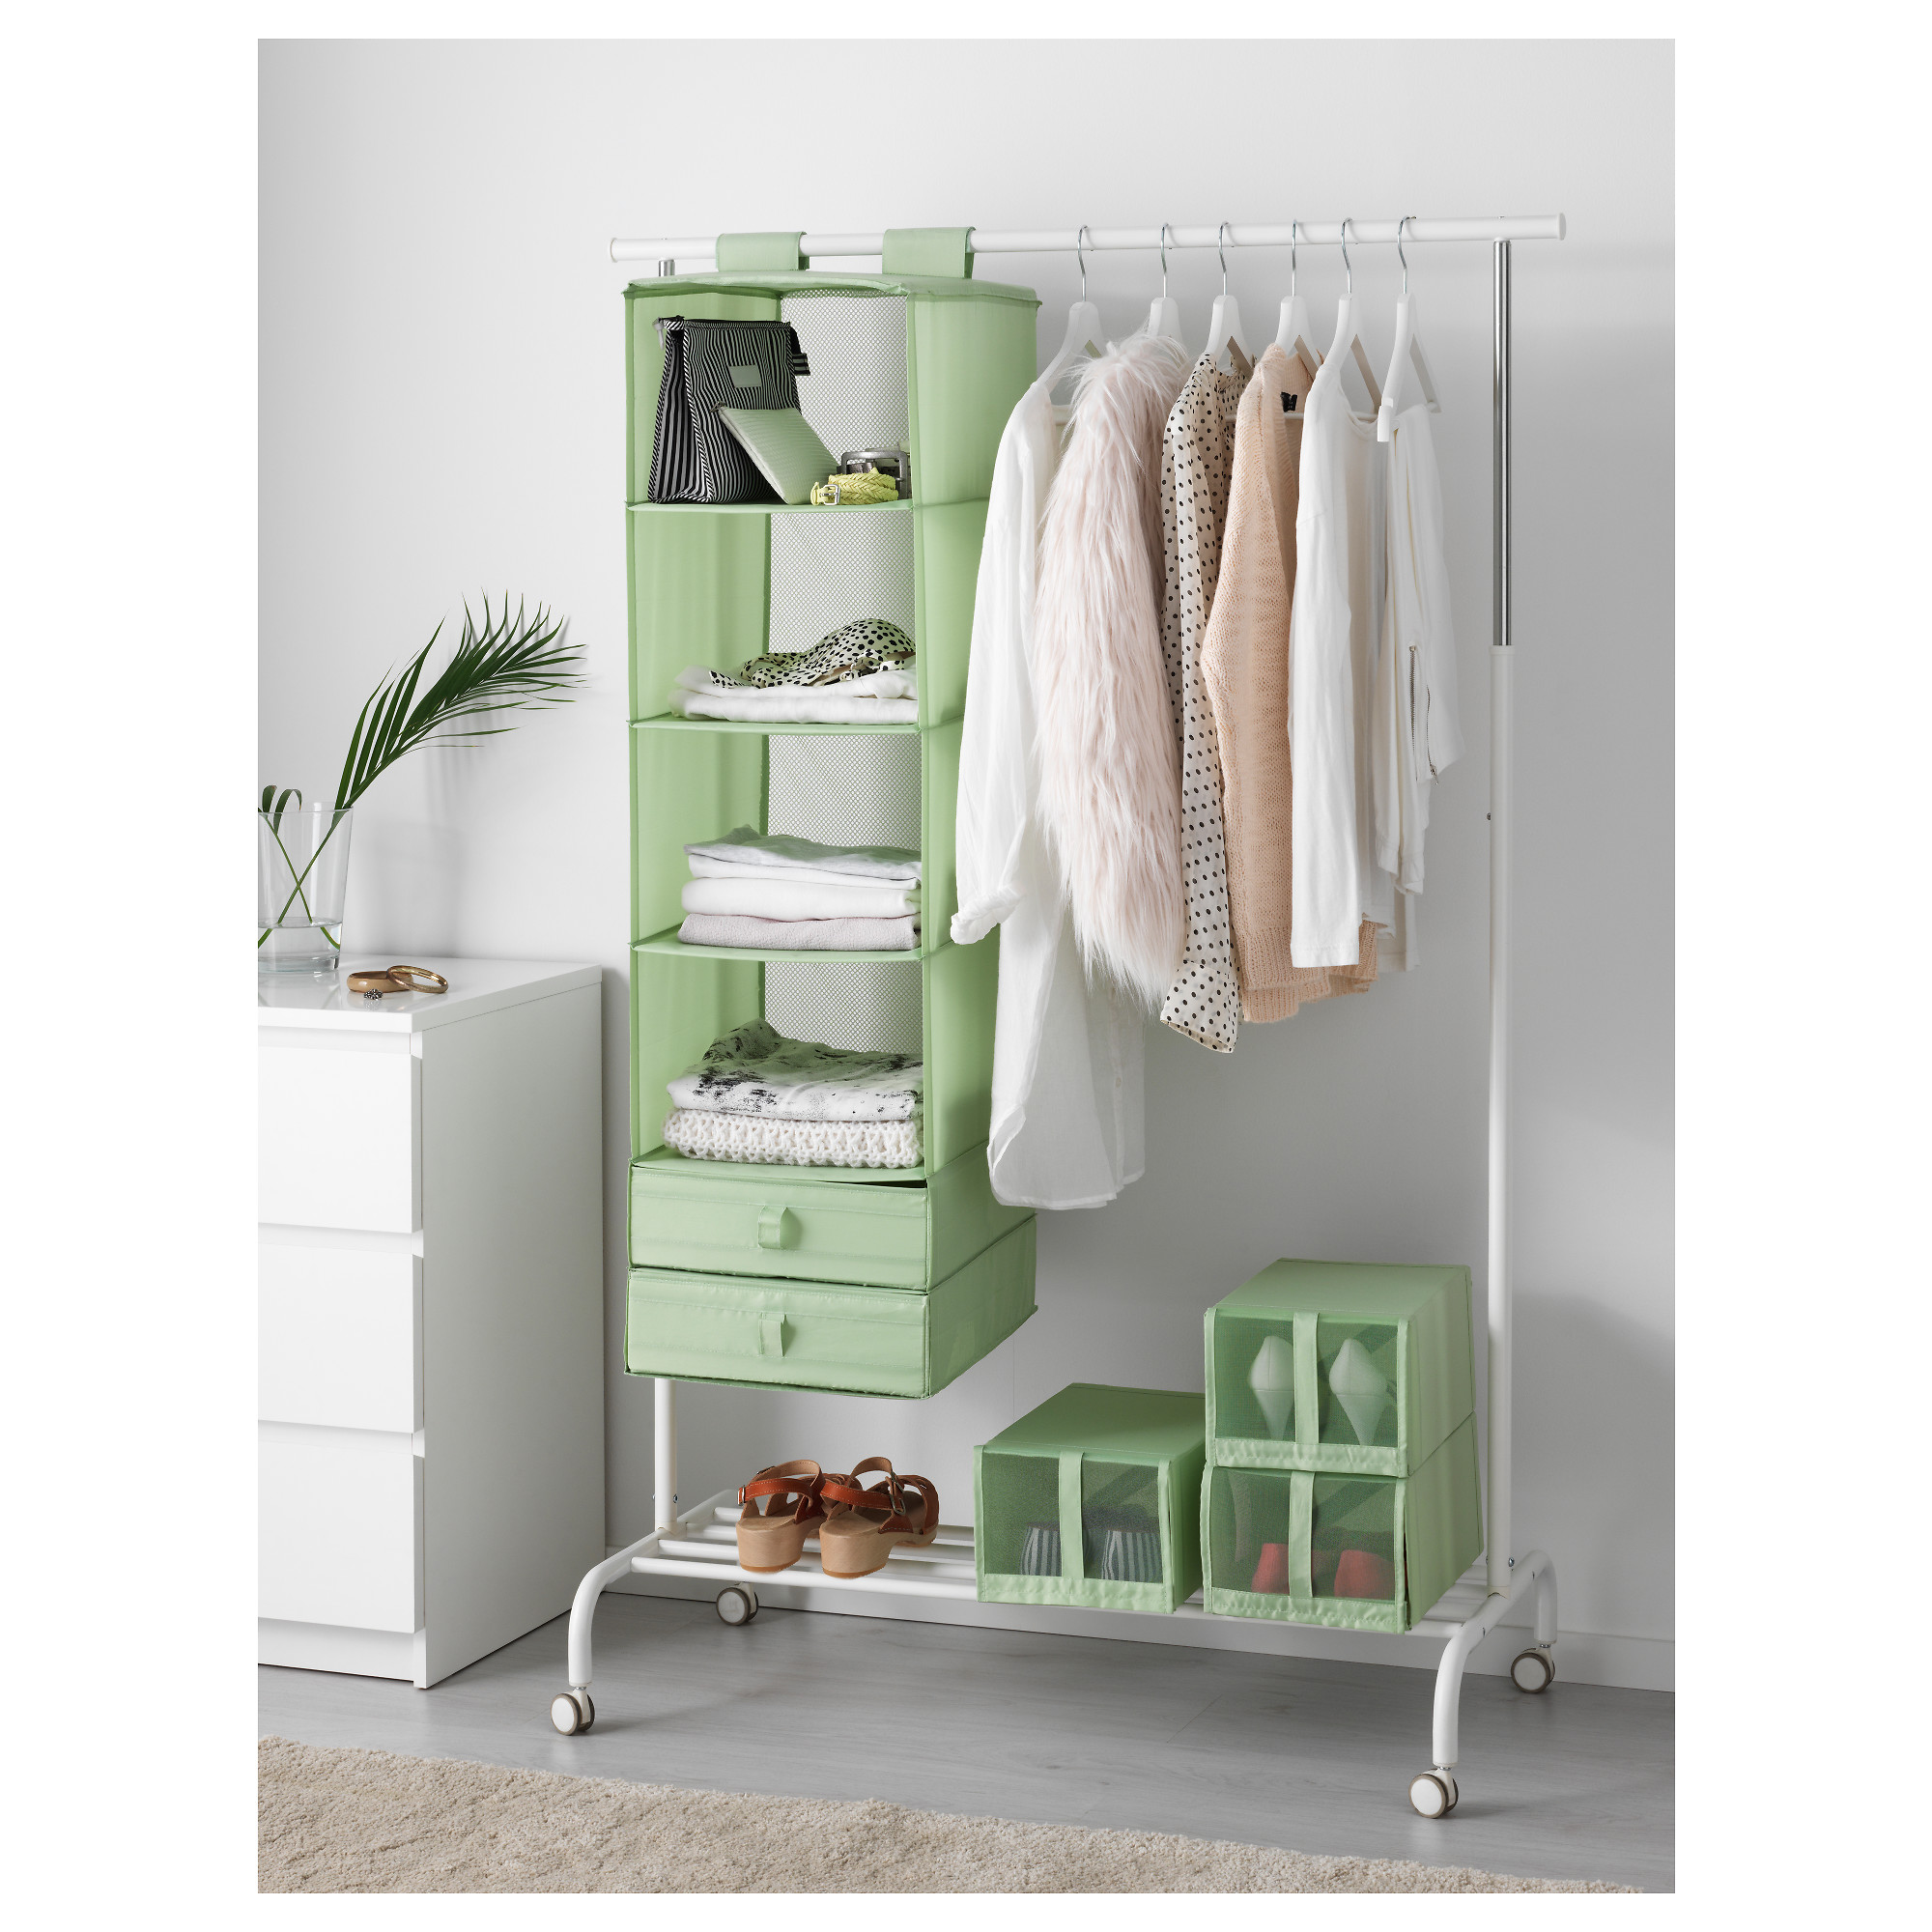 Clothes rack ikea